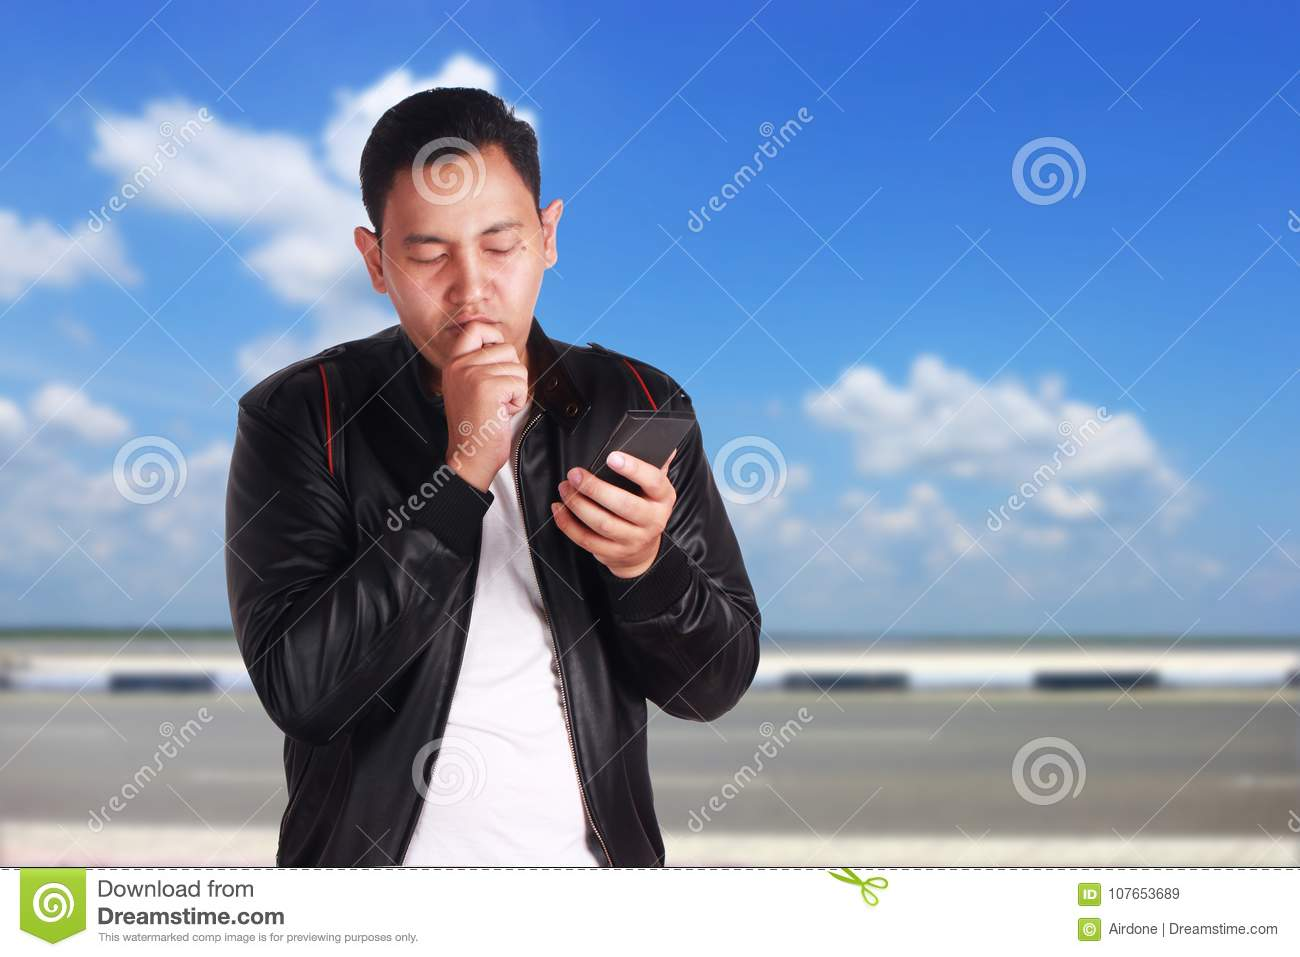 Young Man Texting Reading Chatting On His Phone Sad Gesture